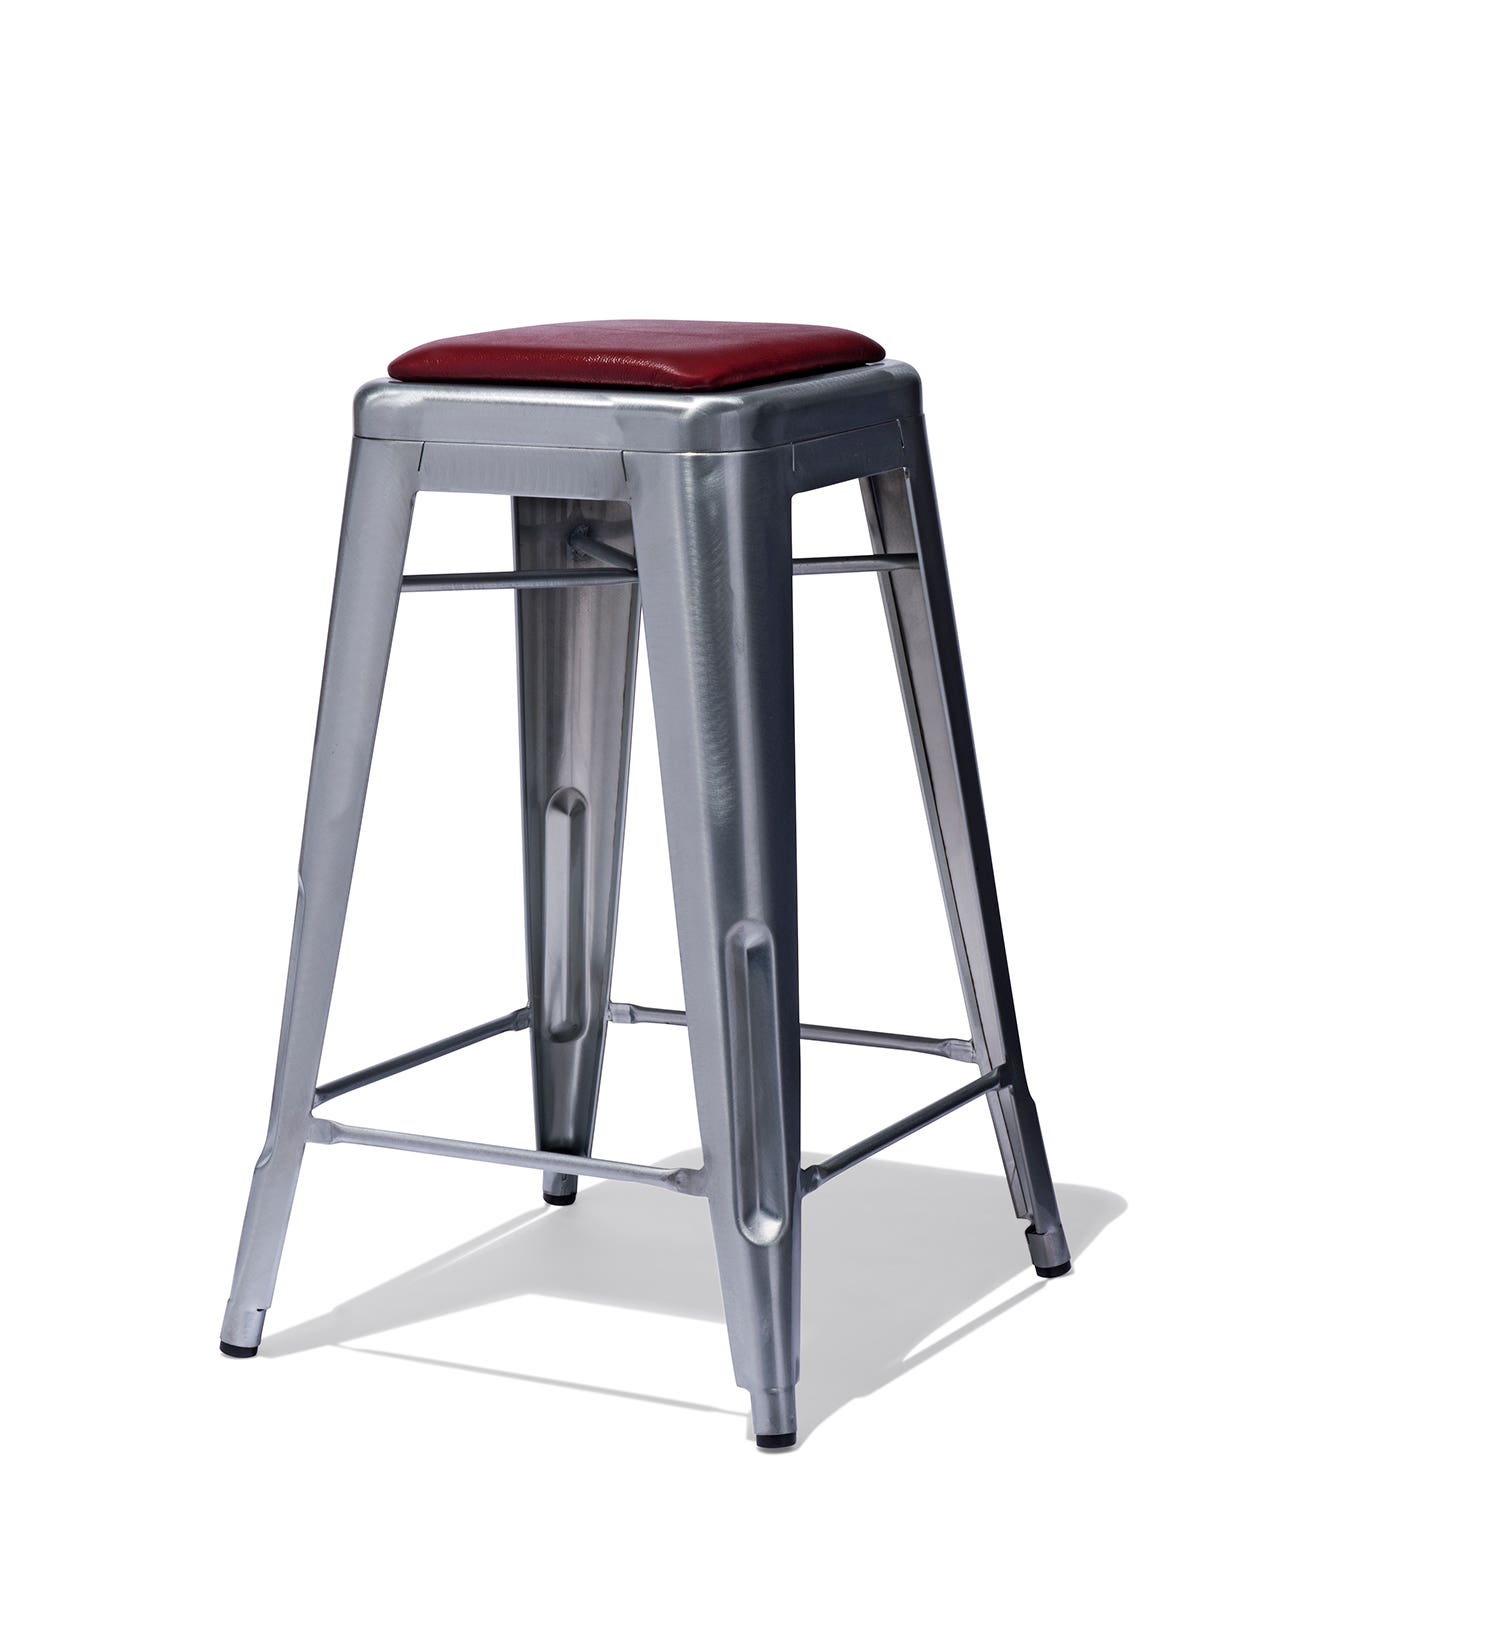 Tolix Bar Stools For Sale Tolix Bar Stools South Africa Smlf Bronze Metal Tolixstyle Chair